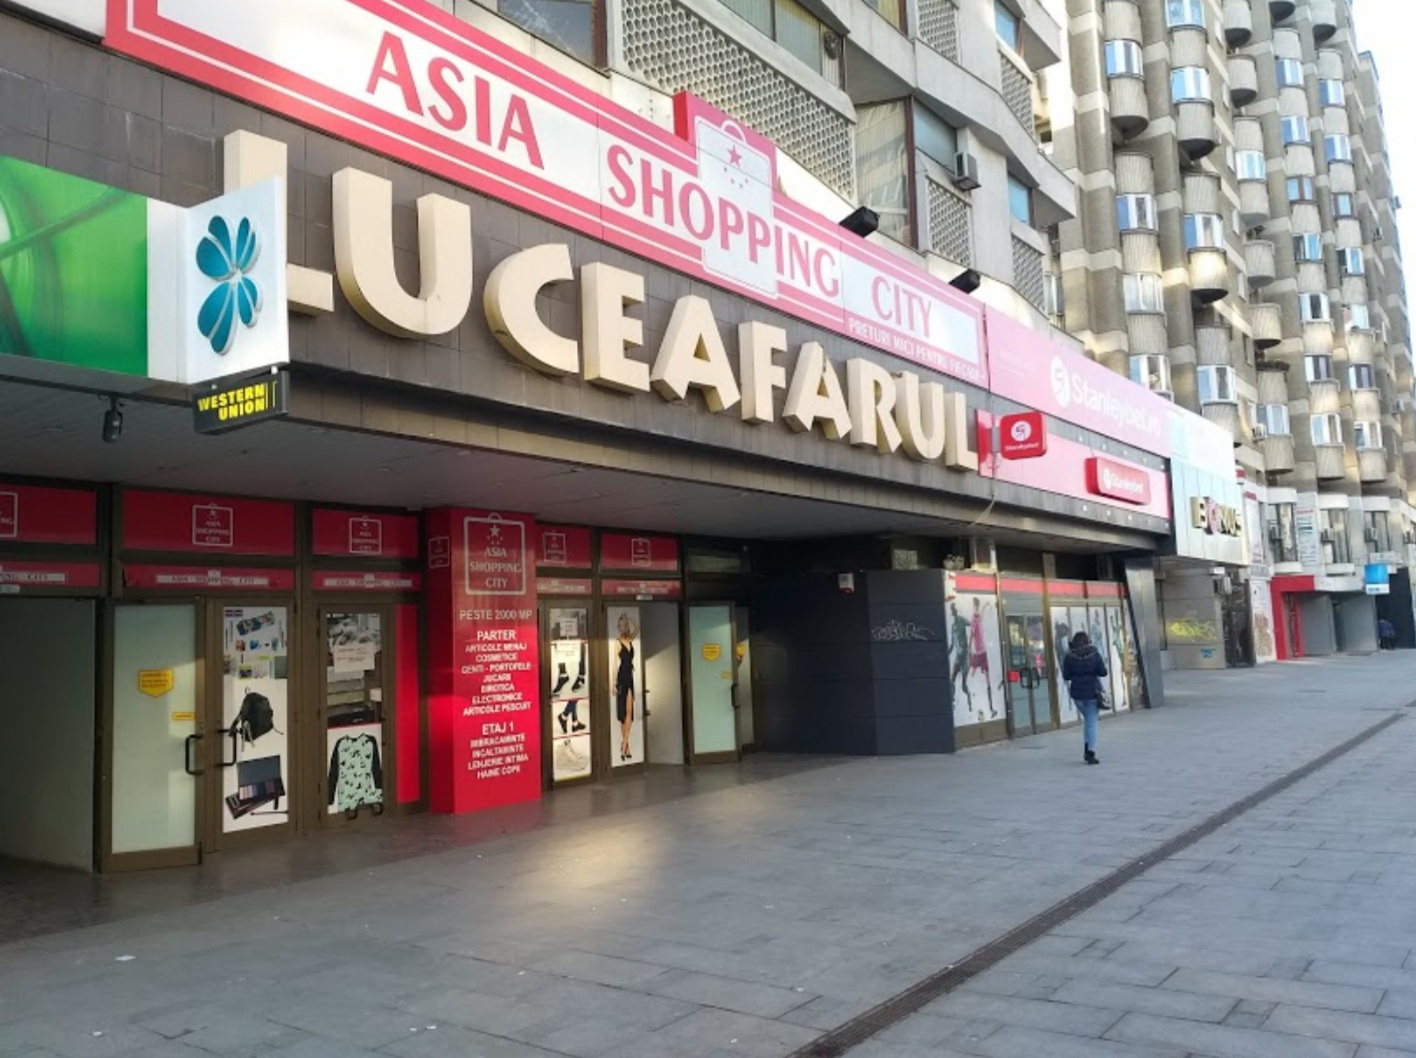 ASIA SHOPING CITY